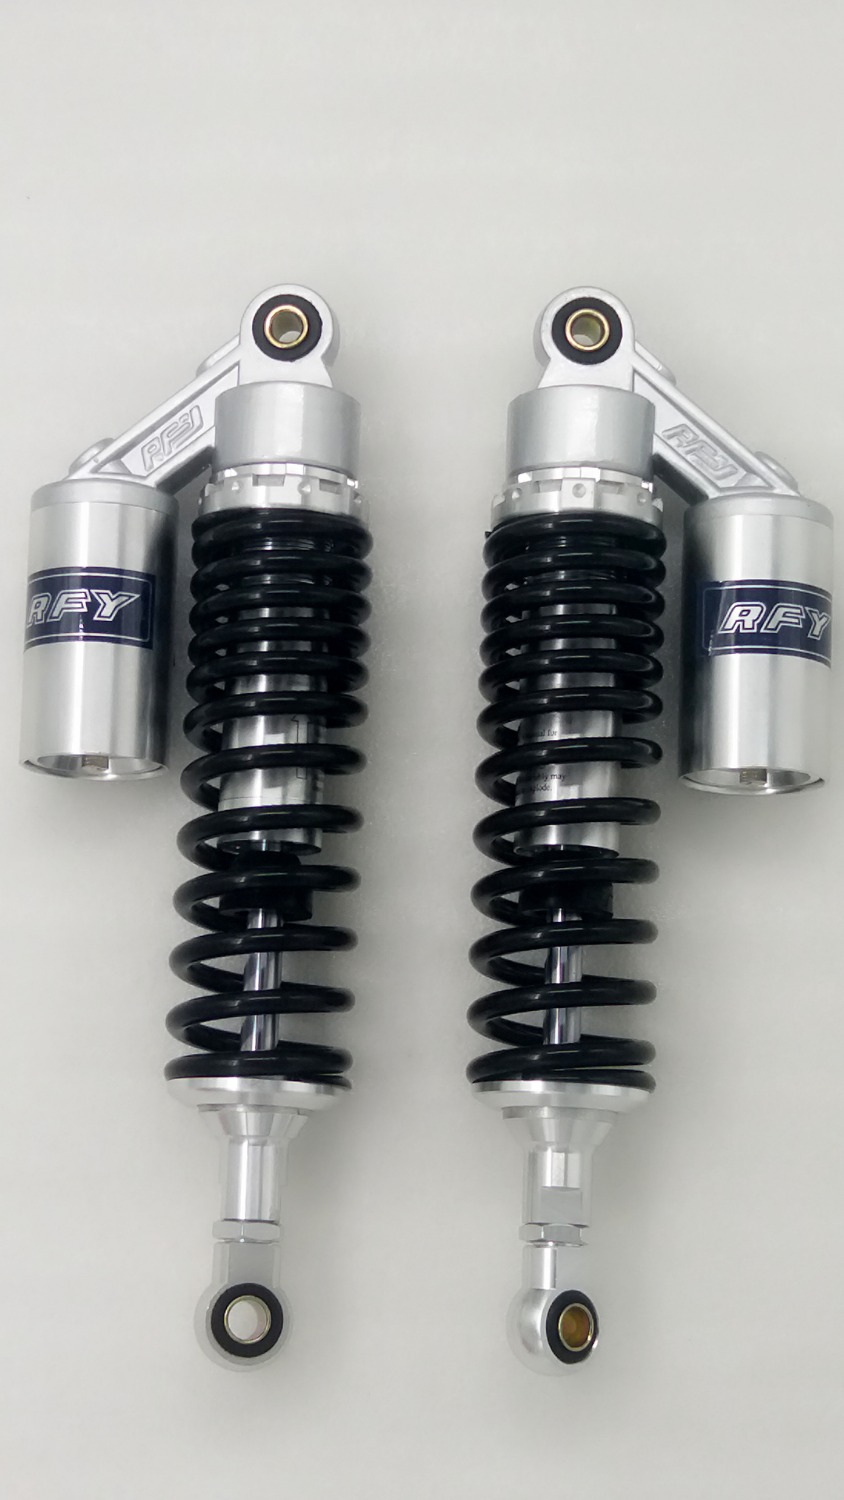 325mm 8mm SPRING REAR AIR/NITROGEN CELL SHOCK ABSORBERS FOR YAMAHA XJR1300 XJR1200 XS1100 XJ900 XJ750 SUZUKI GSX1400 nitrogen spring nitrogen nitrogen spring spring mould maintenance inflatable new custom misumi